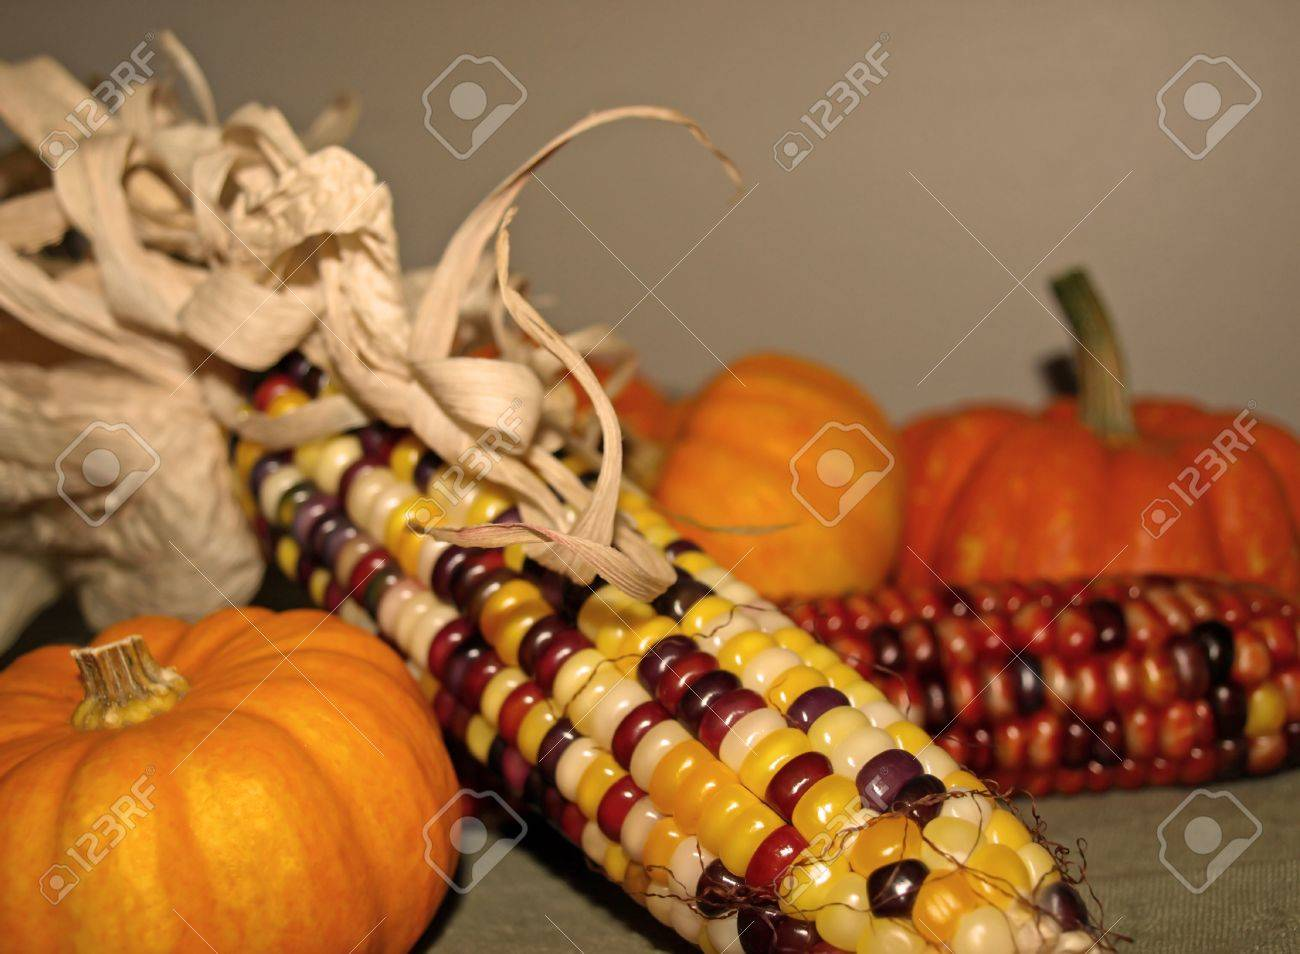 harvest decor of corn and autumn gourds stock photo 11011200 - Harvest Decor